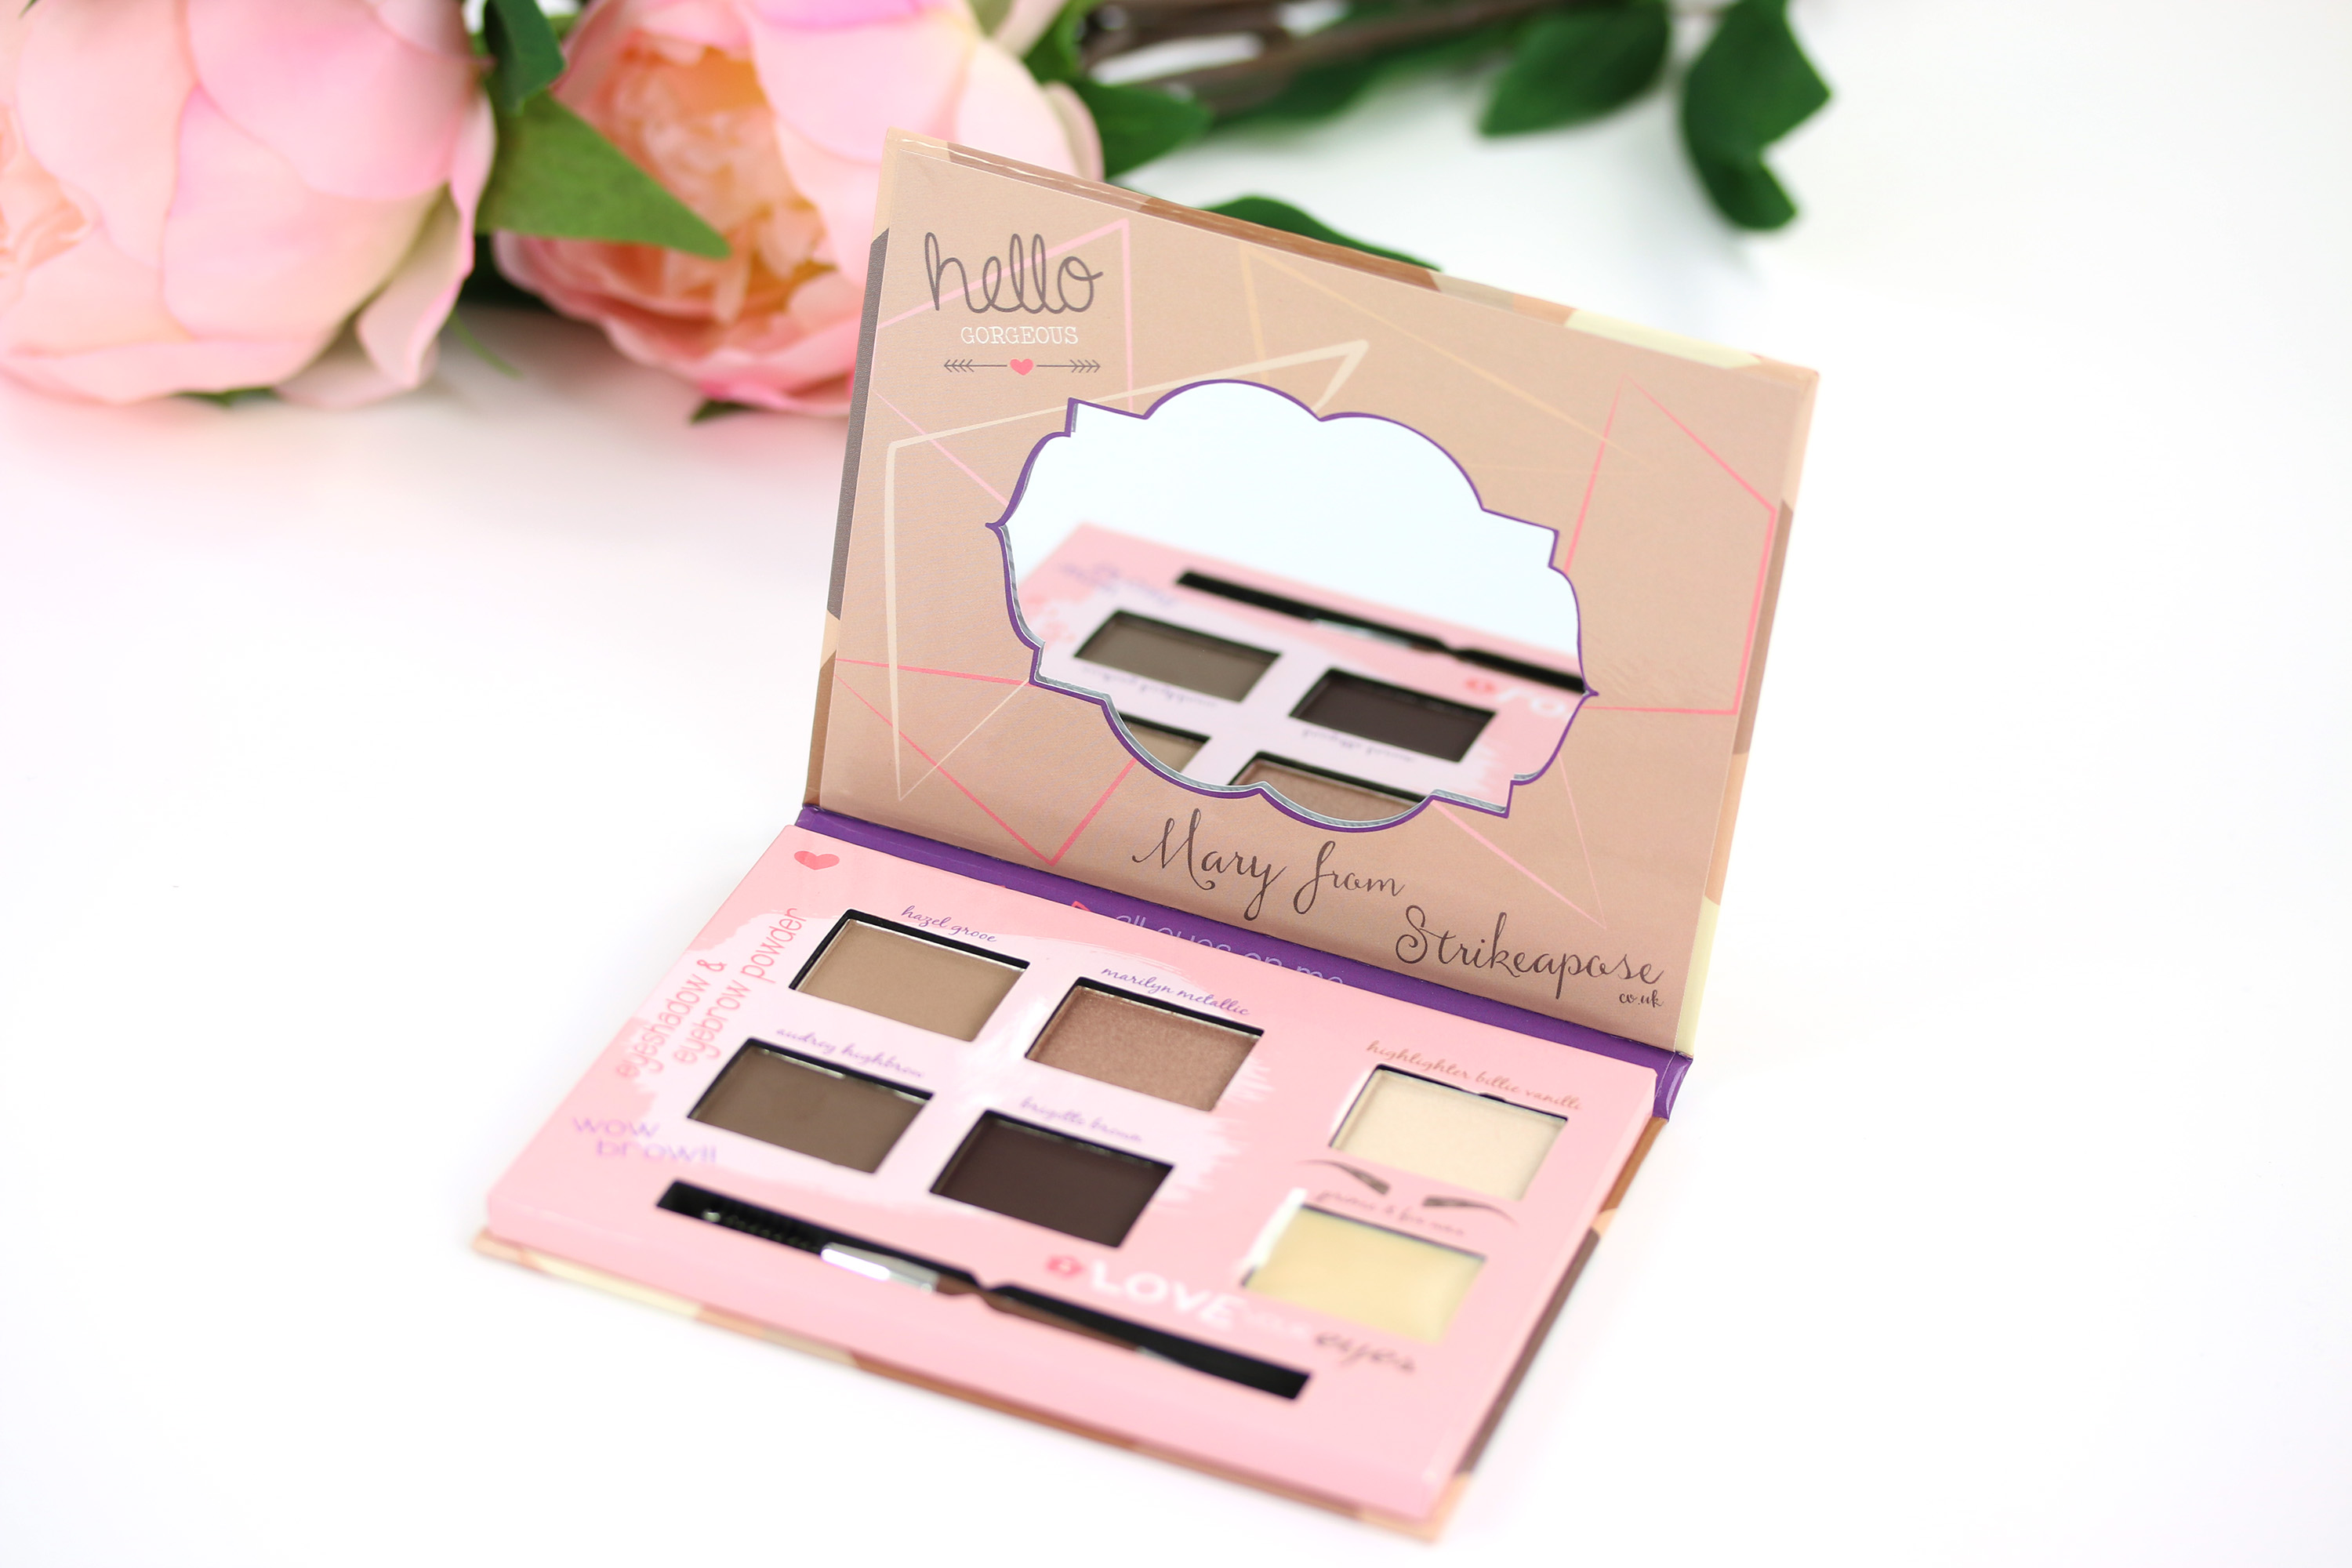 essence Shape & Shadows eye contouring palette